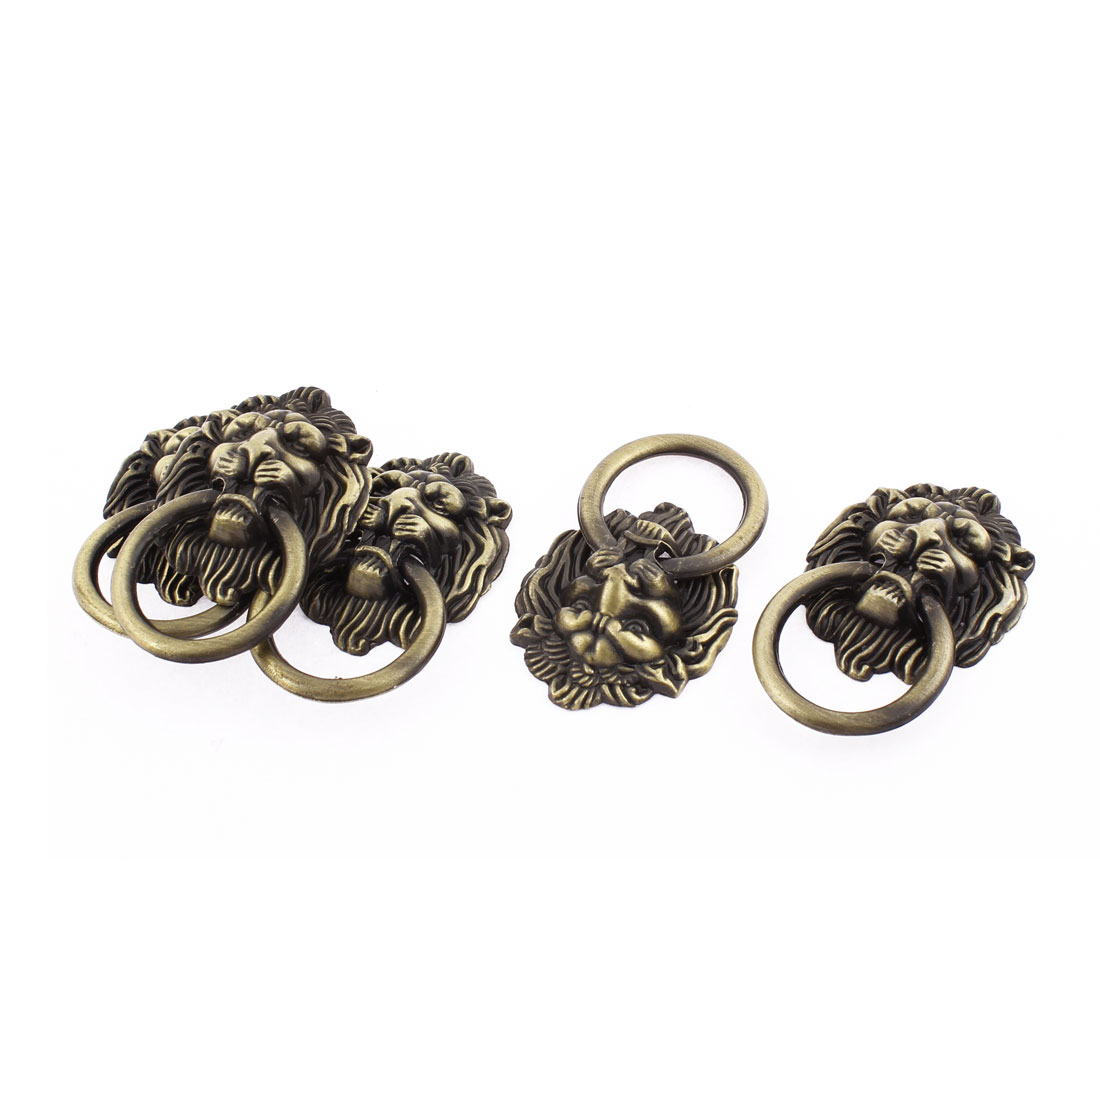 Lion Head Design Metal Pull Knobs Handle 1.5 Inch Dia Bronze Tone 5pcs